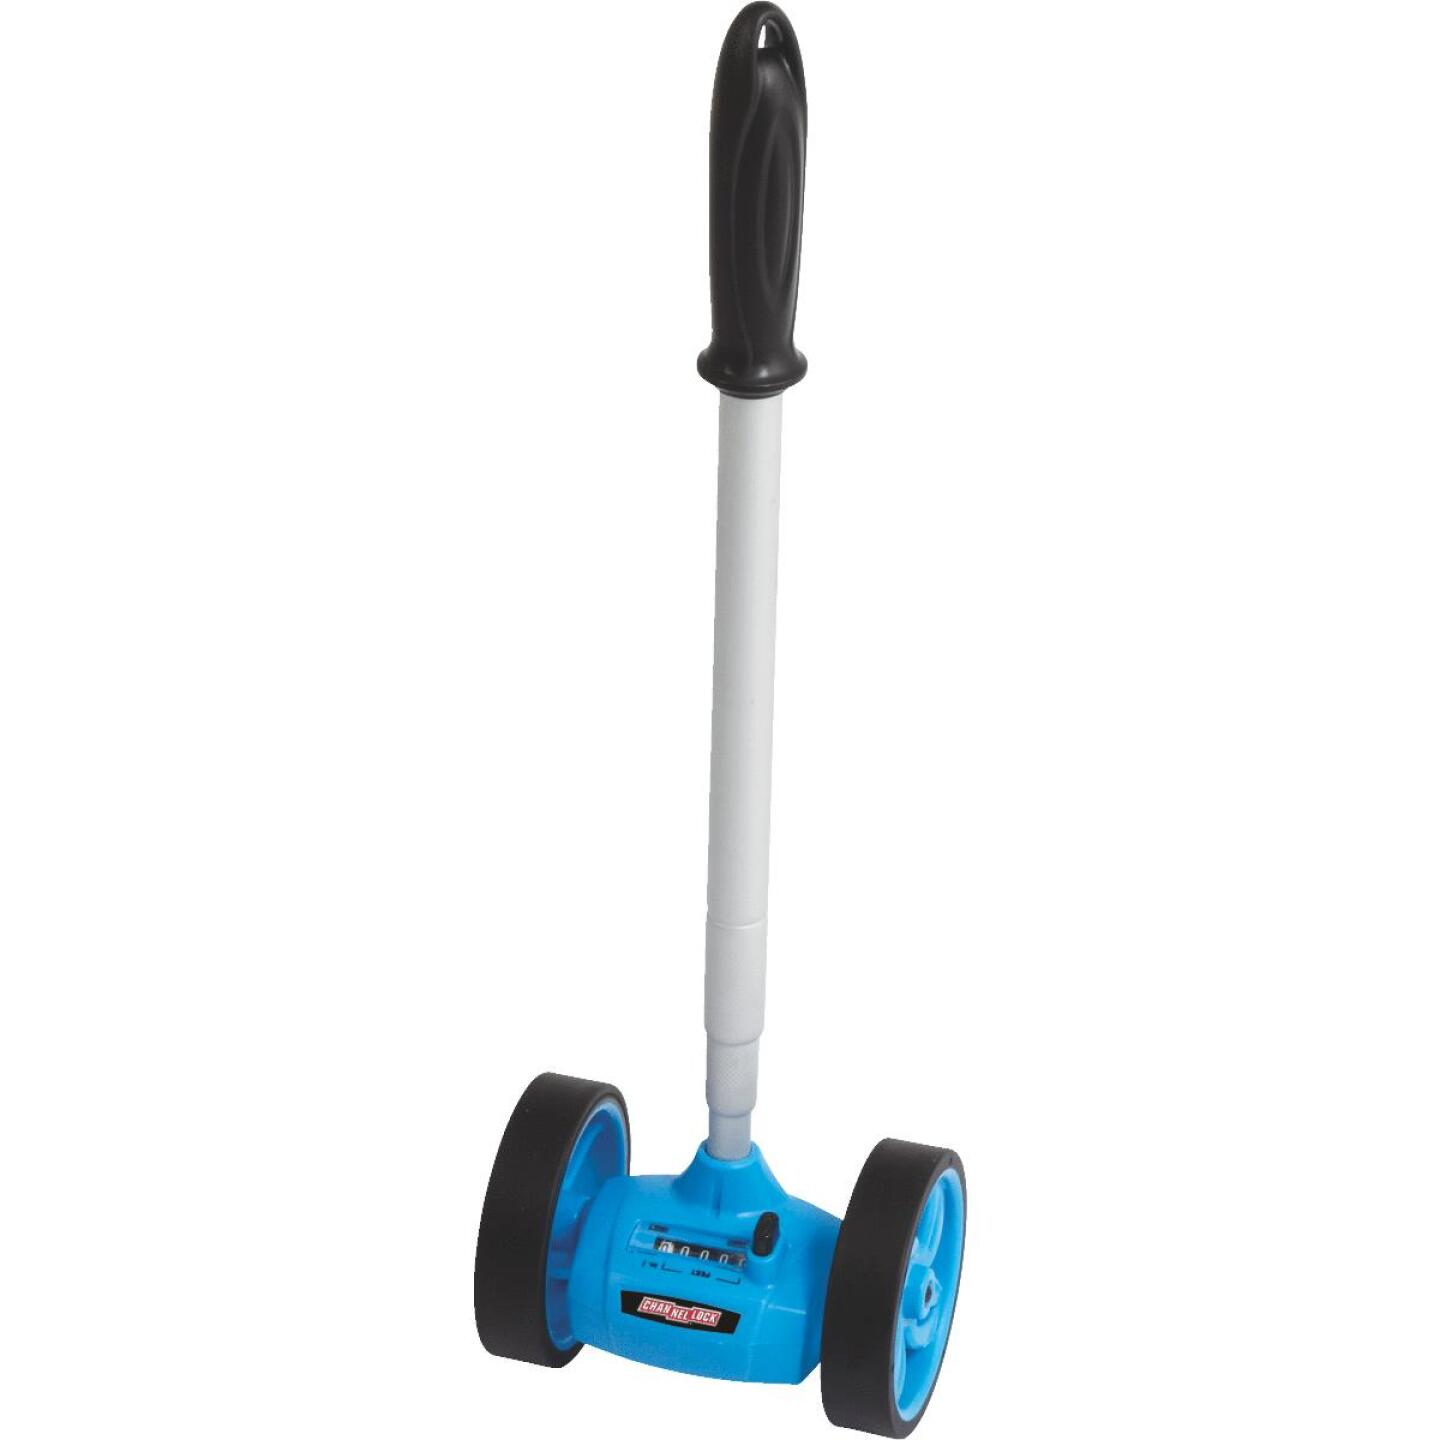 Channellock 4 In. Dual Measuring Wheel Image 2